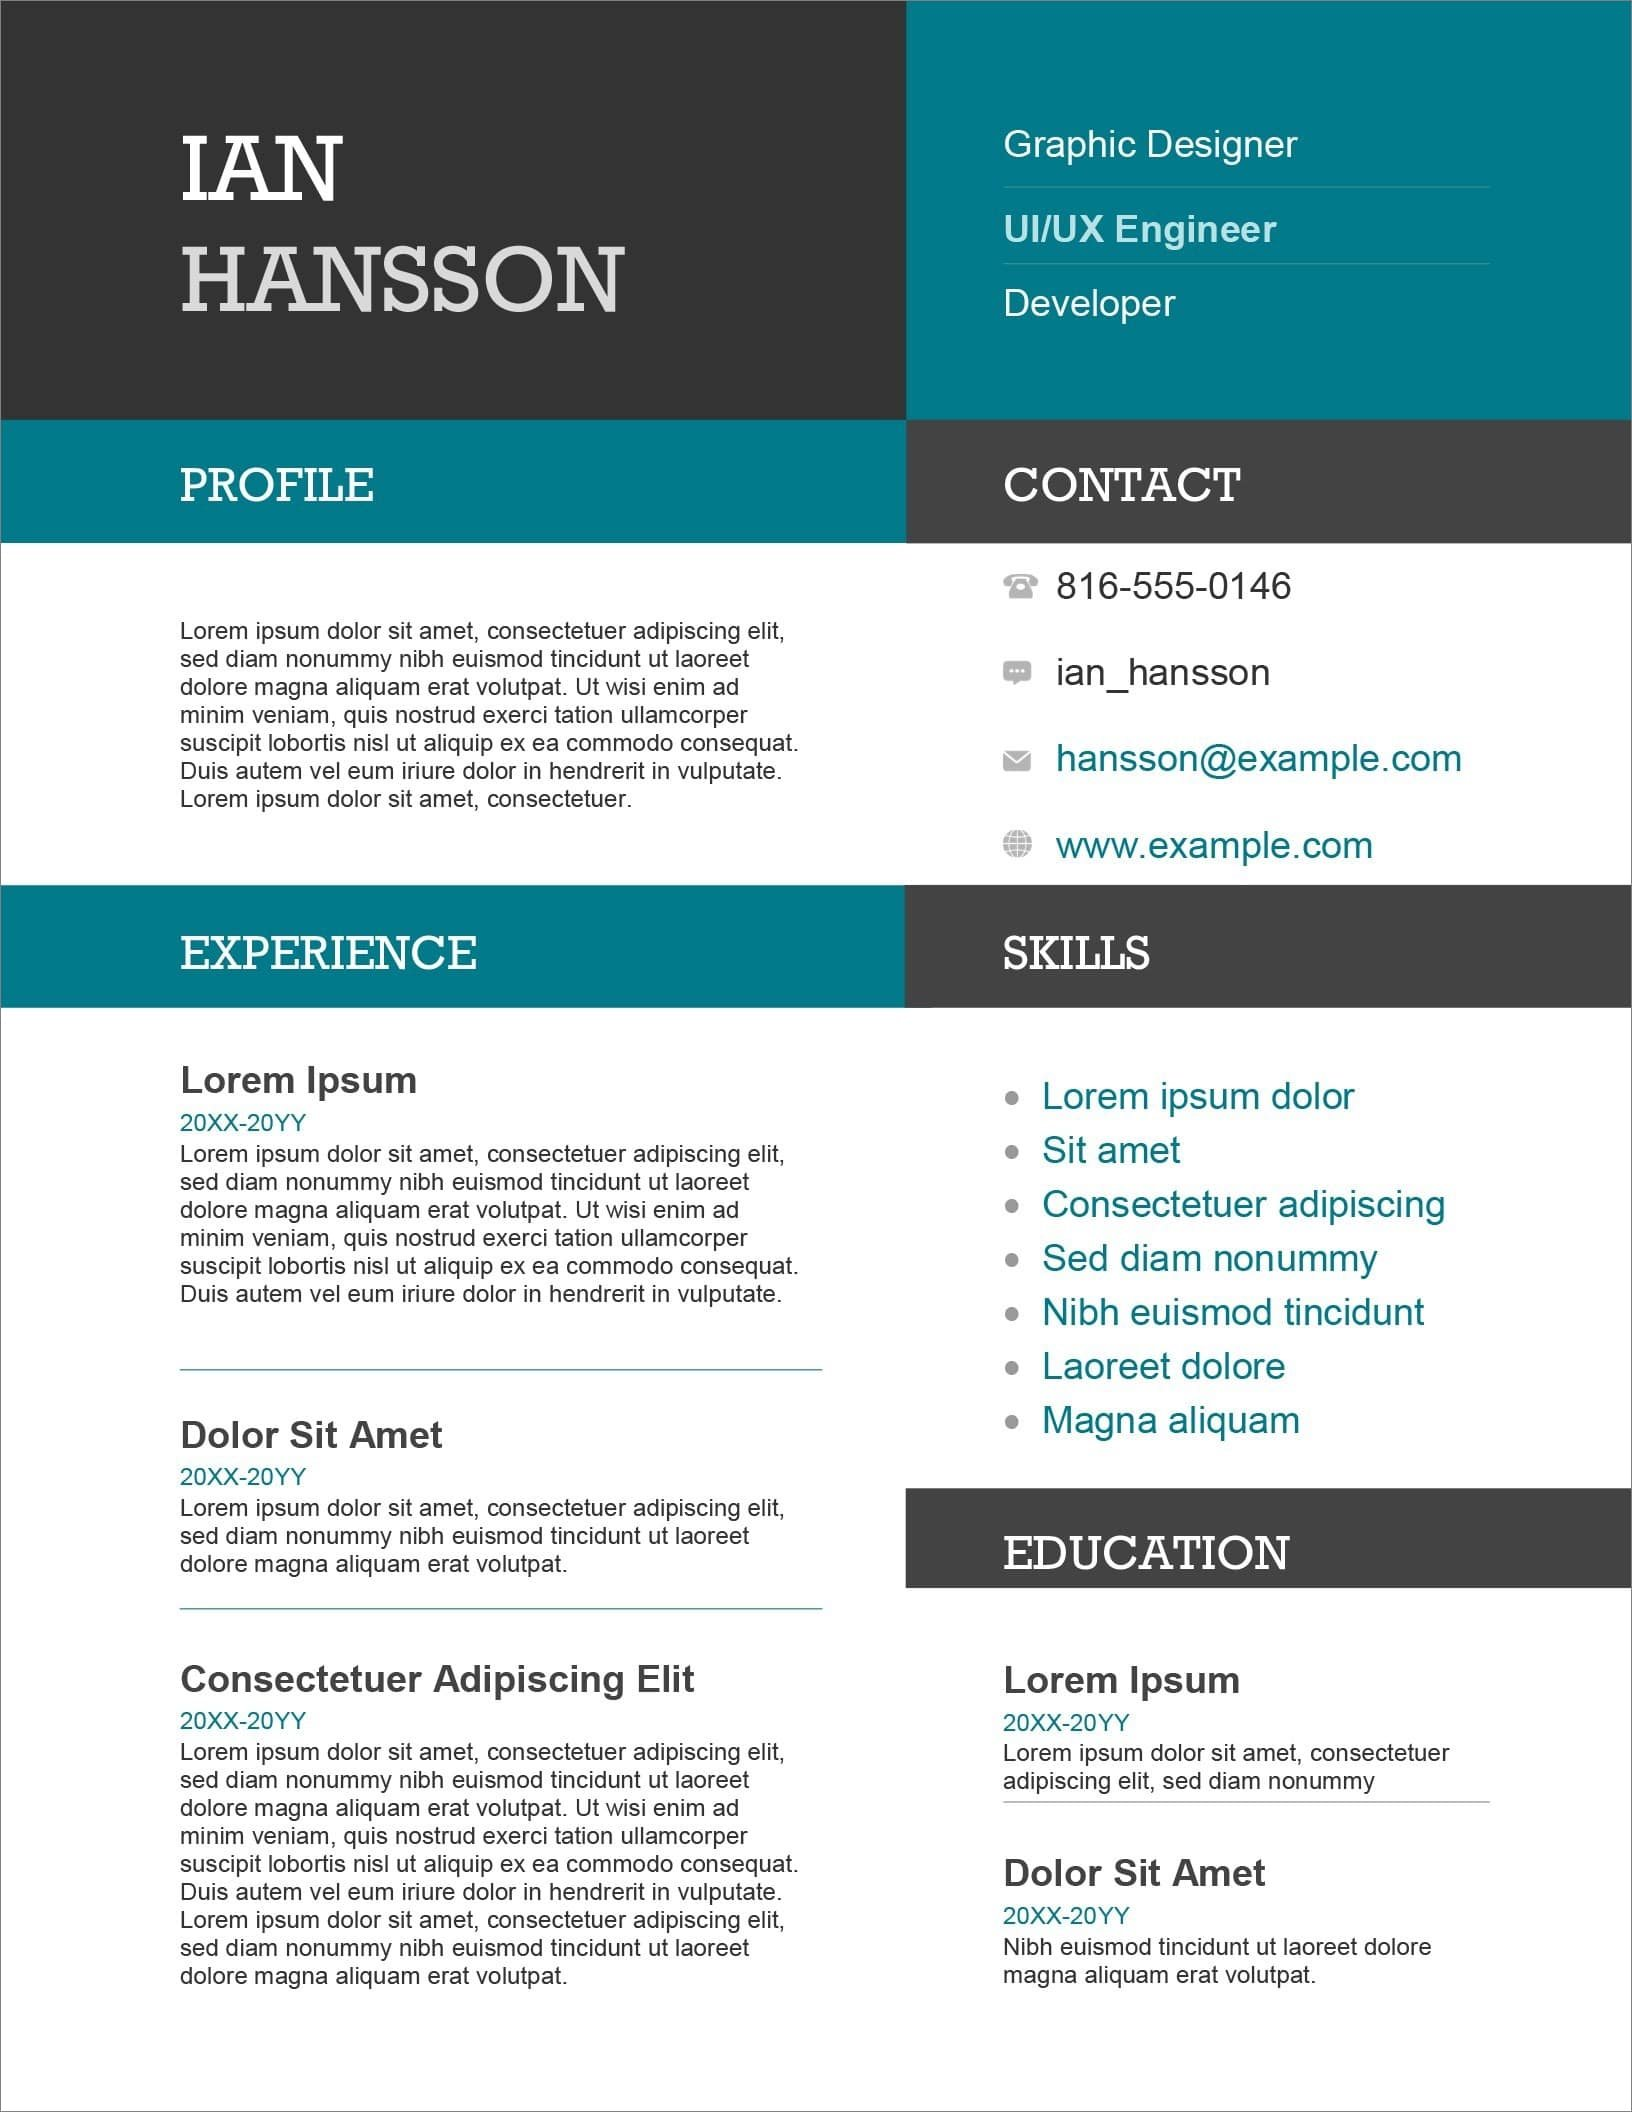 resume templates for microsoft word free with photo ms word19 internal transfer template Resume Resume Templates For Microsoft Word With Photo